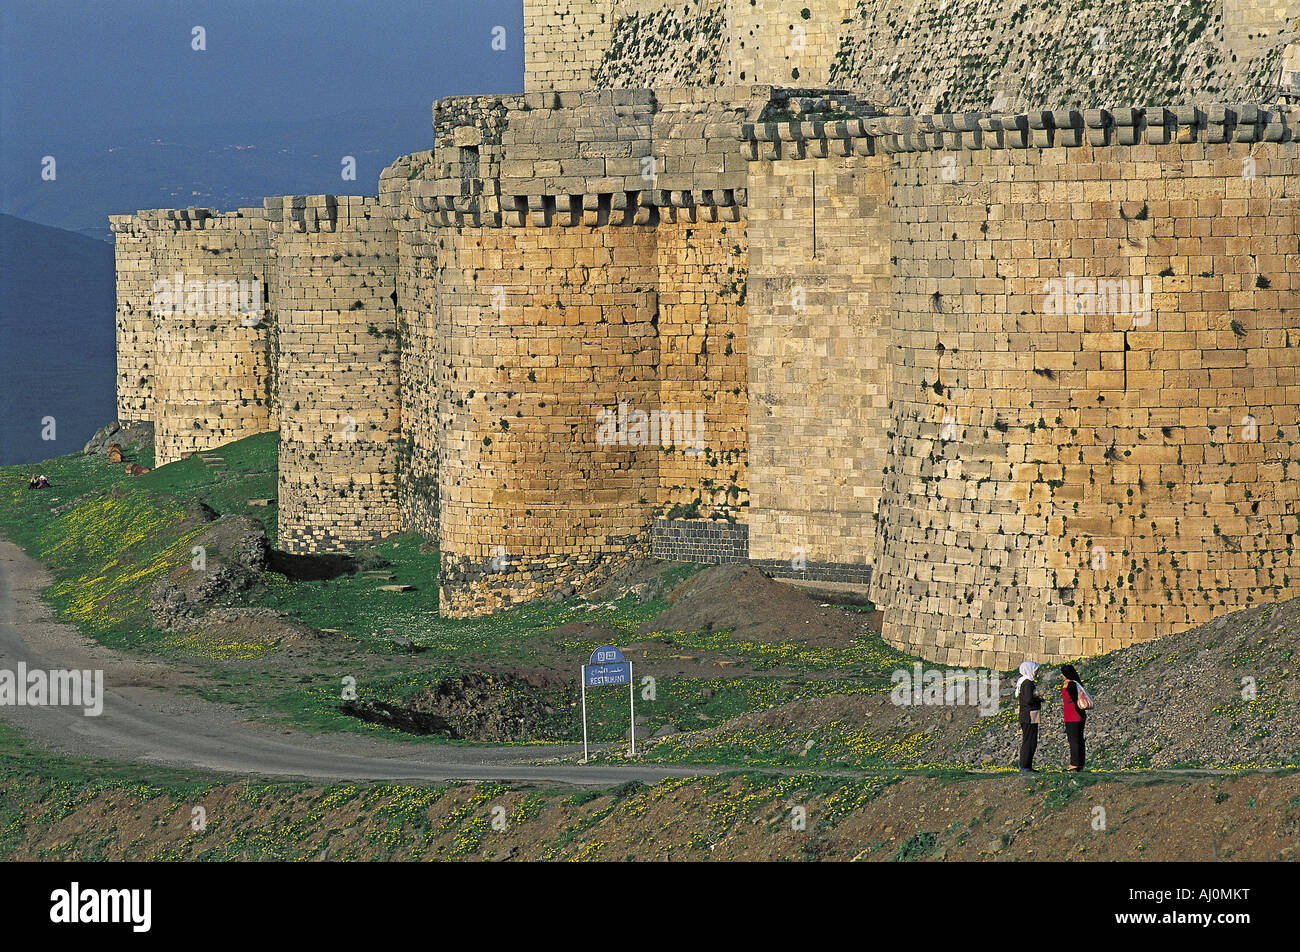 Syria, Qalaat al Hosn, Krak, Knights fortress listed as World Heritage by UNESCO - Stock Image